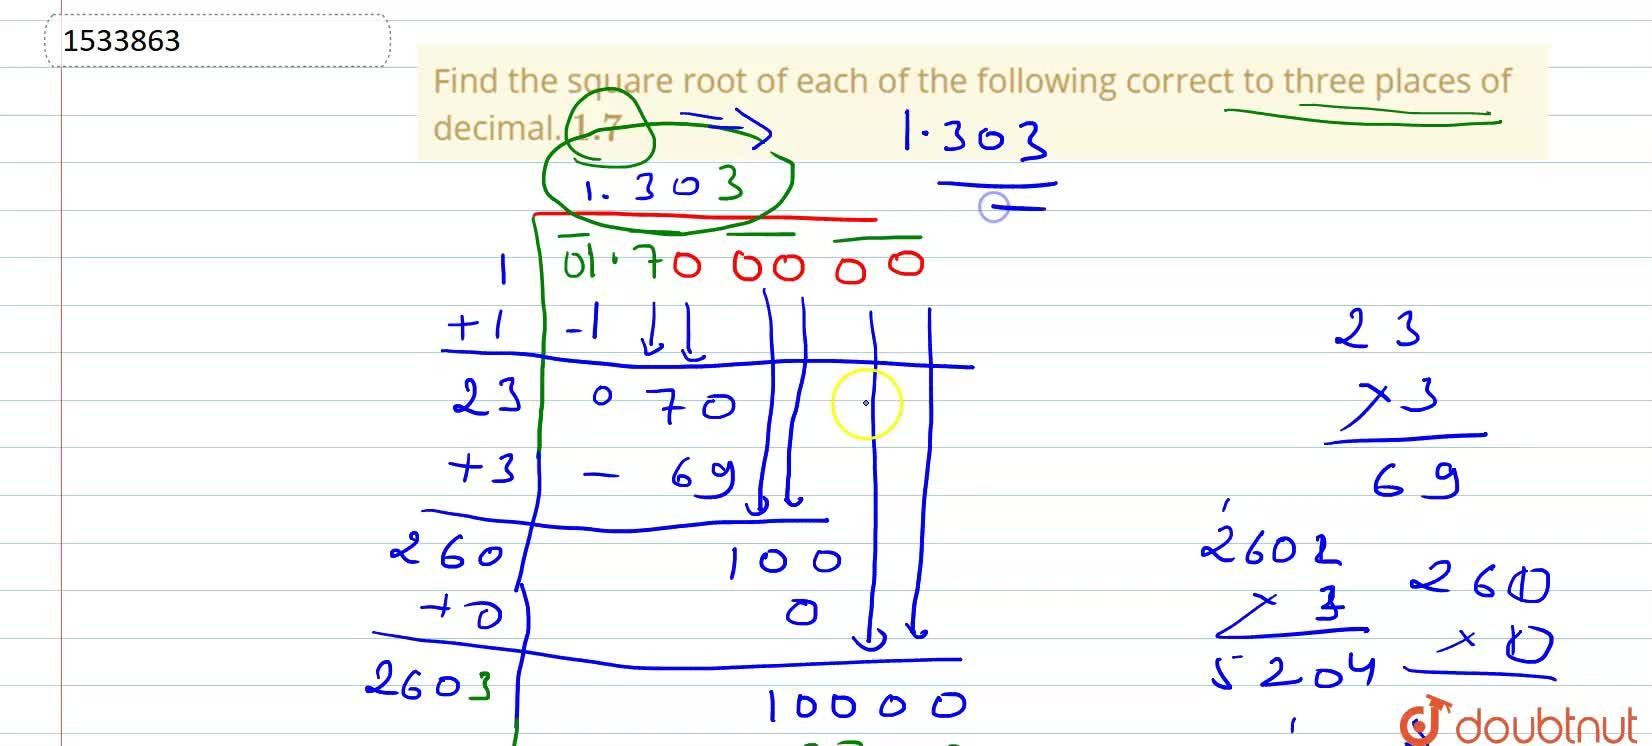 Find the square root of each of the following   correct to three places of decimal. 1.7